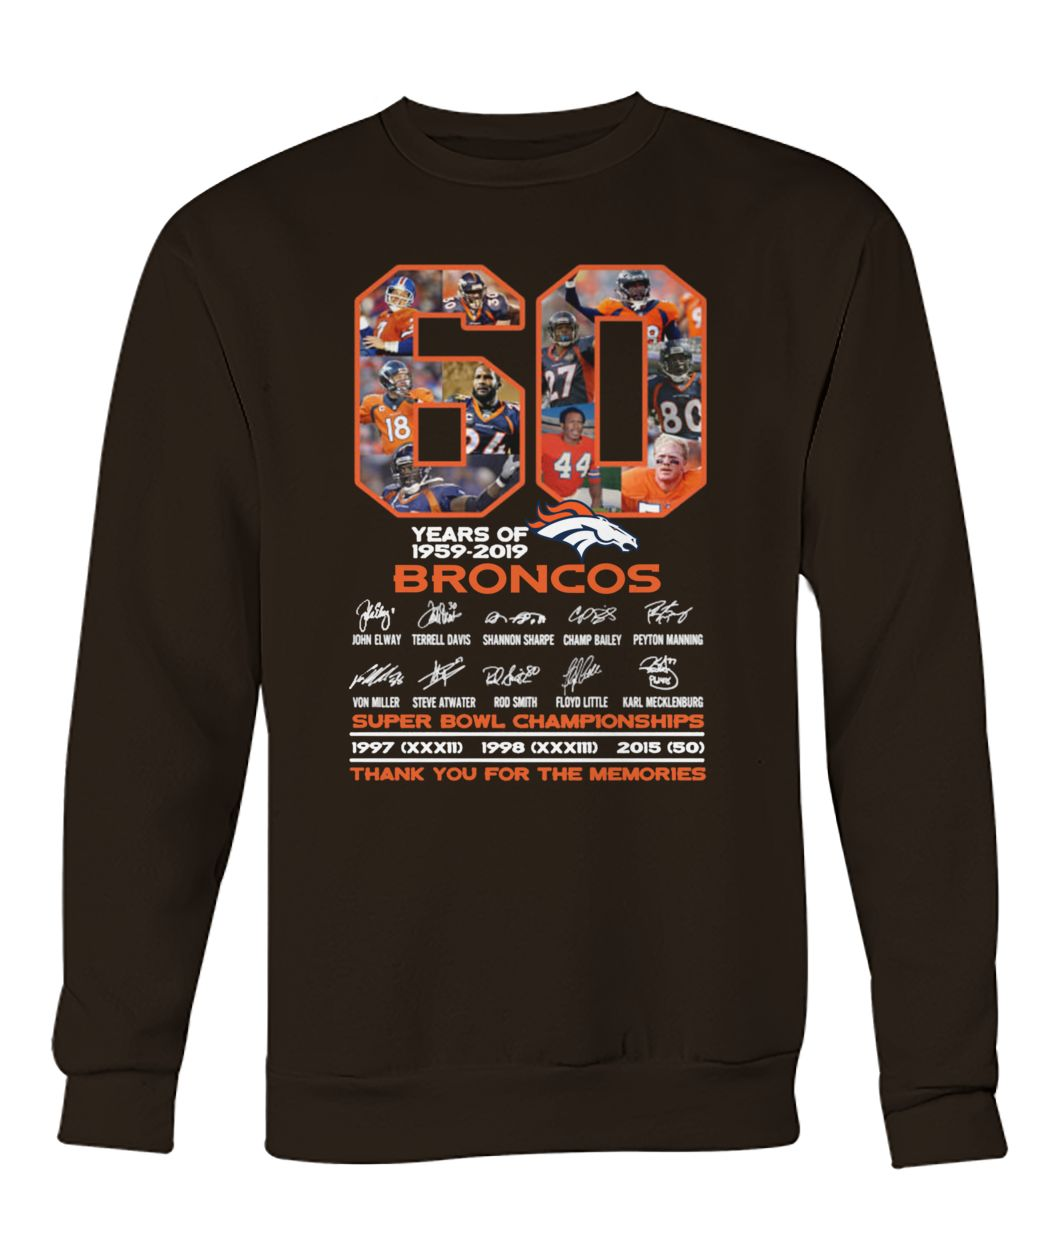 60 years of 1959-2019 broncos super bowl championships thank you for memories signatures crew neck sweatshirt